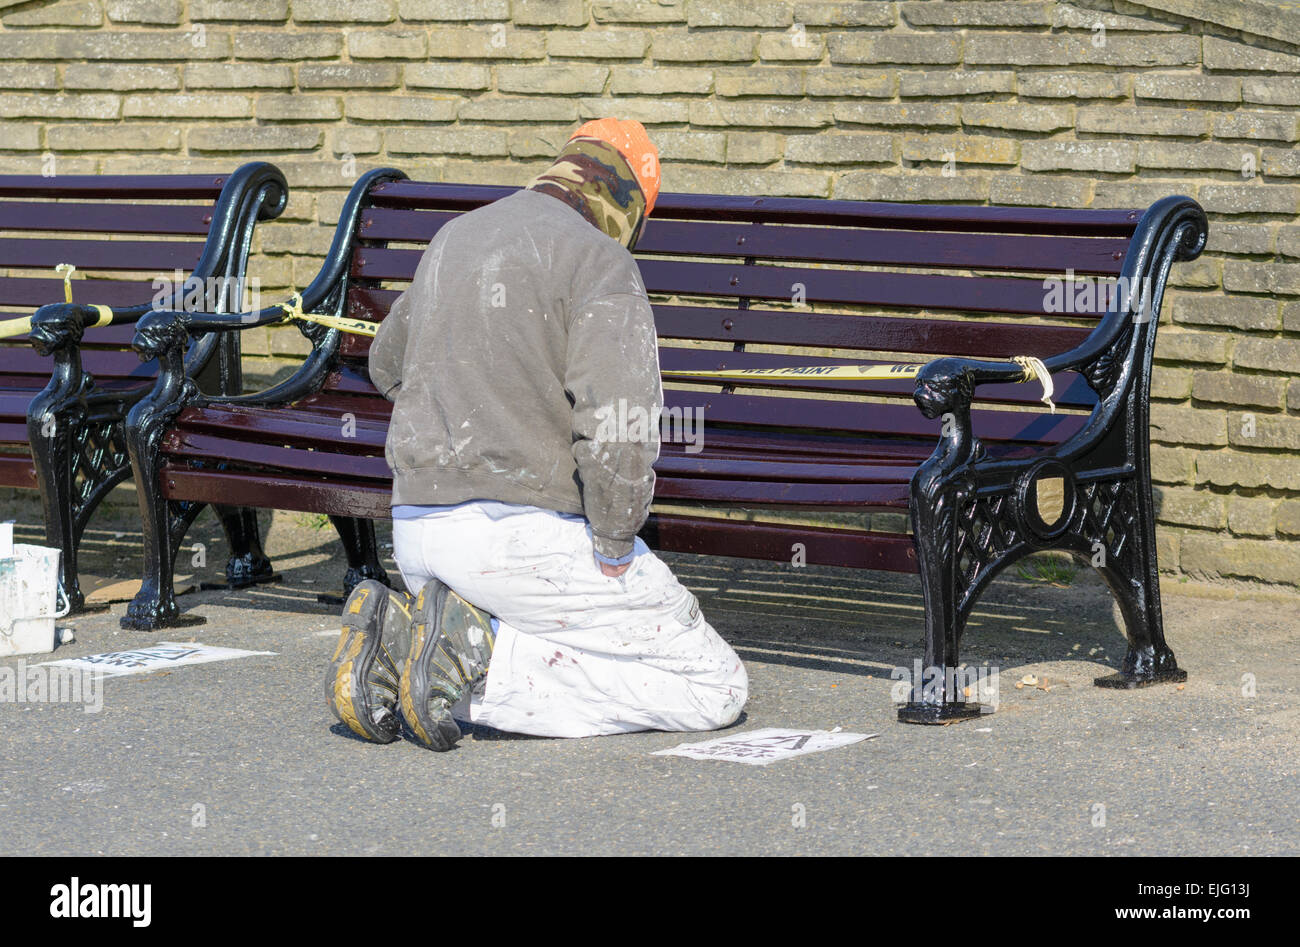 Workman kneeling down painting a wooden bench. - Stock Image